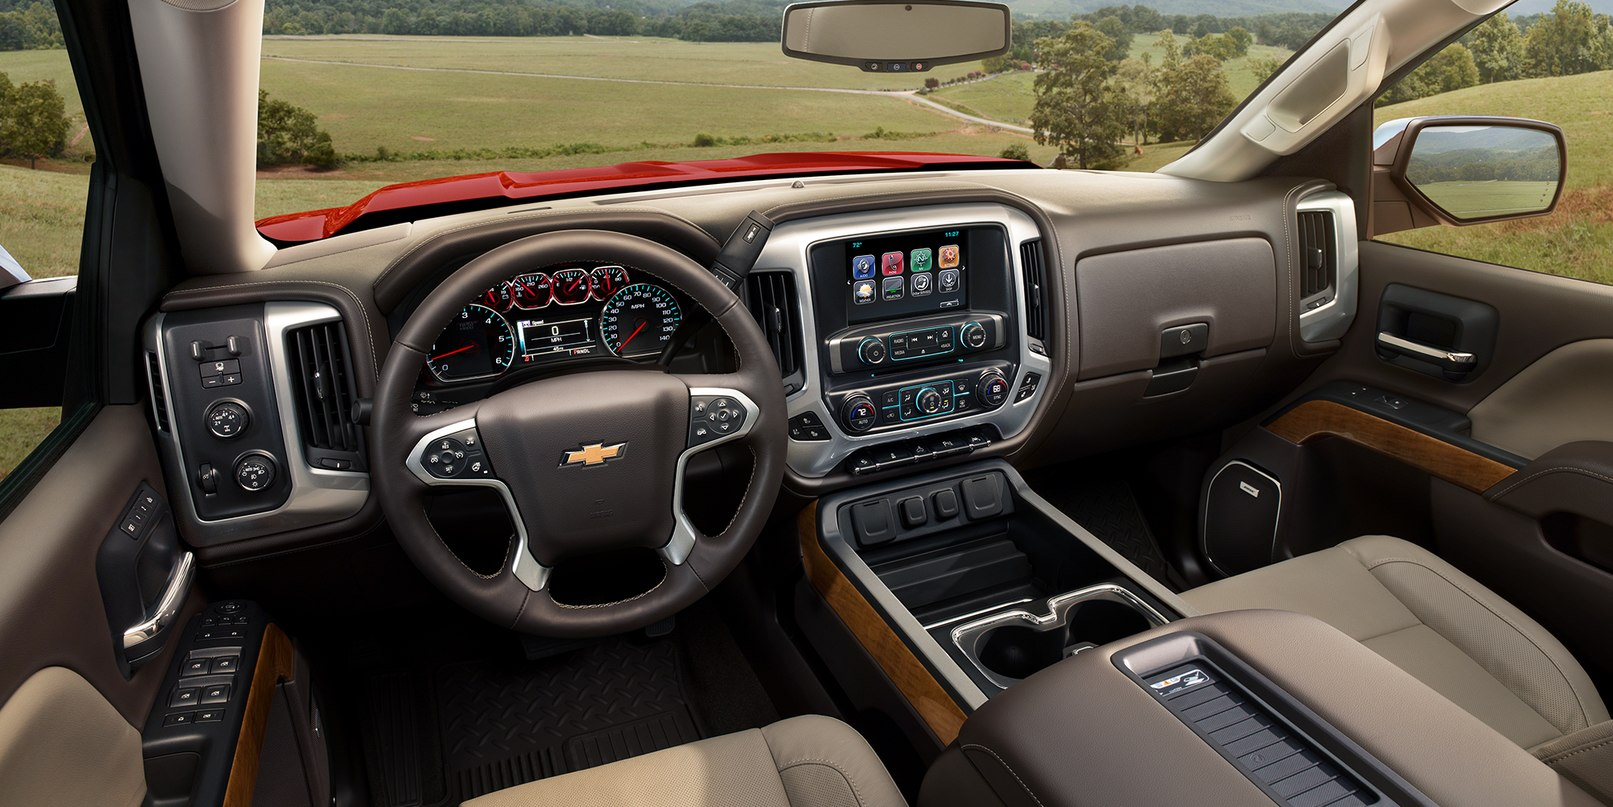 Interior of the 2019 Chevrolet Silverado 1500